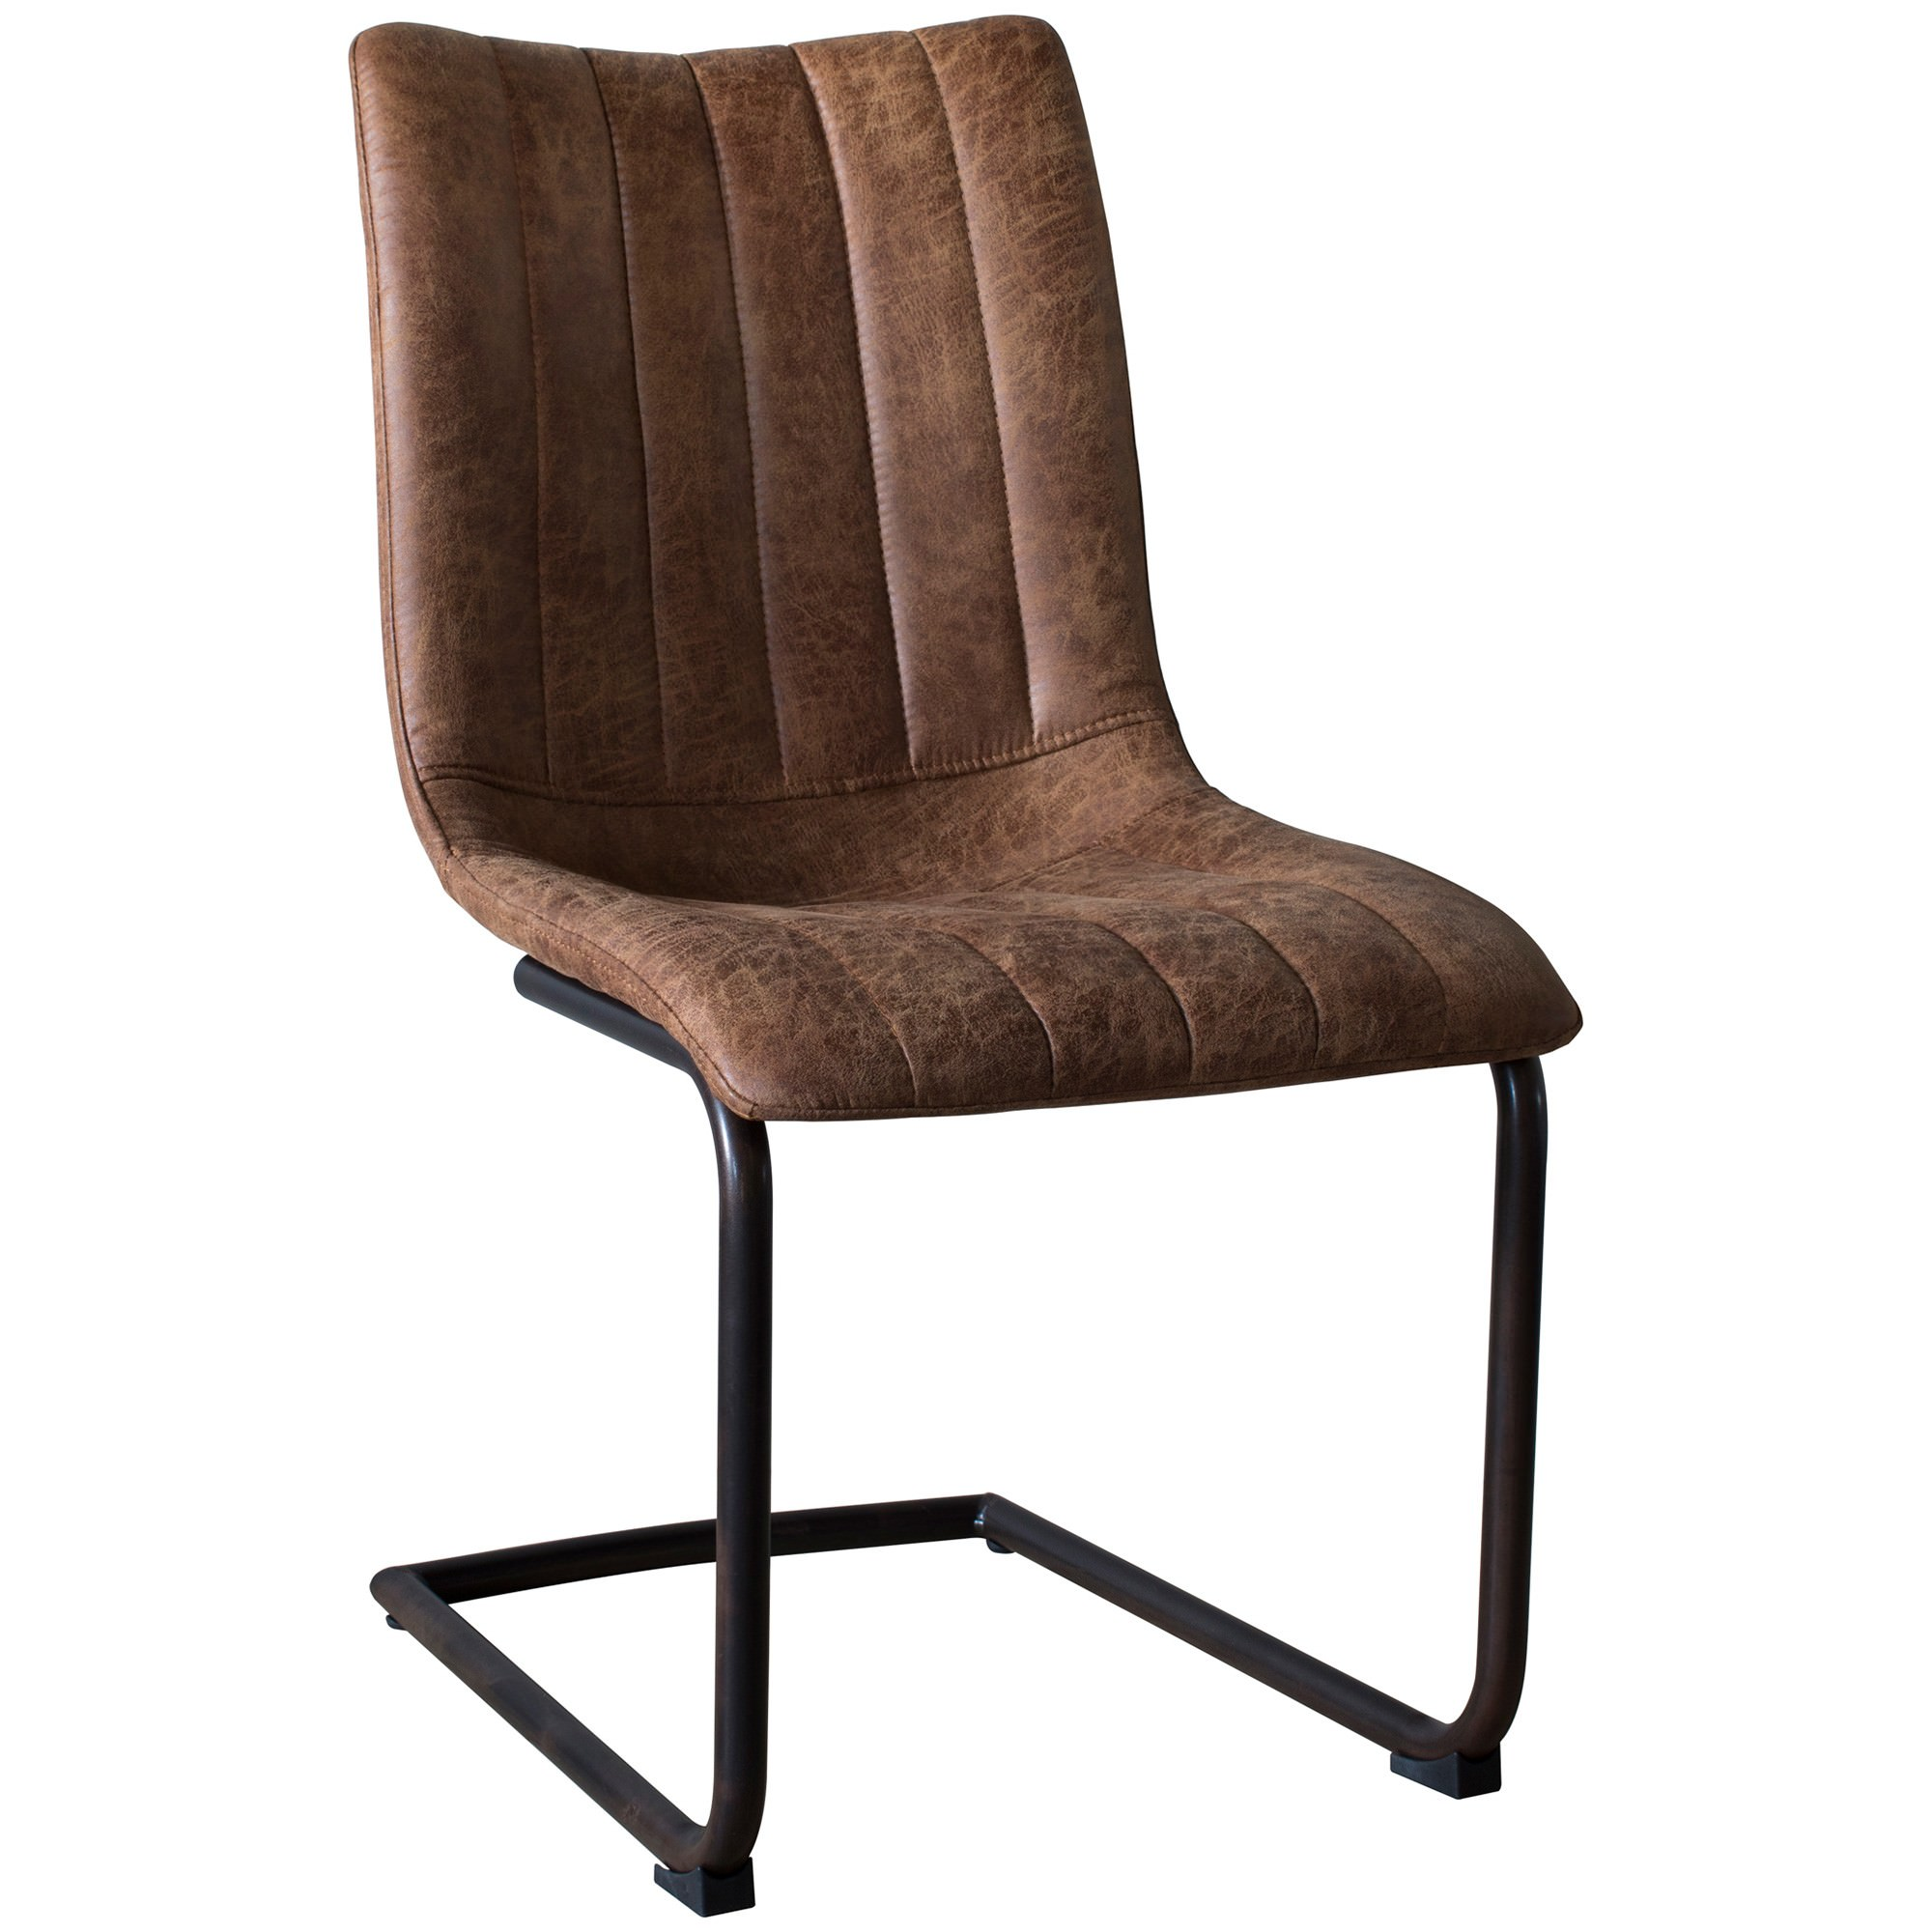 Erin Faux Leather Dining Chair, Set of 2, Tan